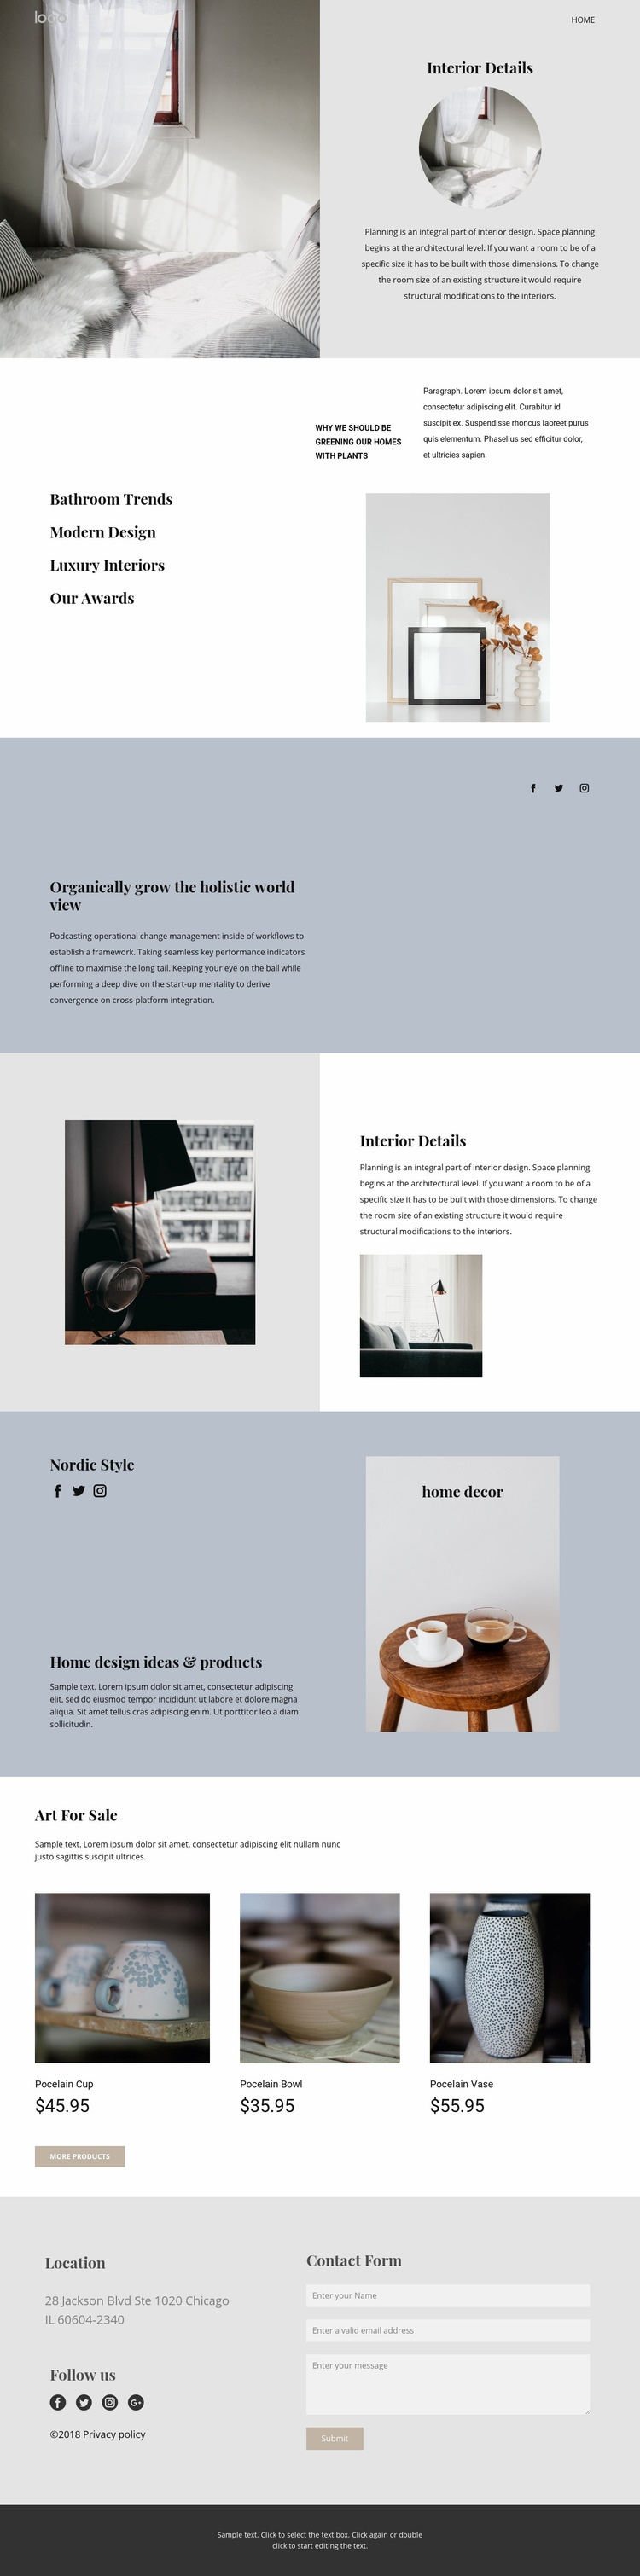 Design your home from scratch Web Page Designer